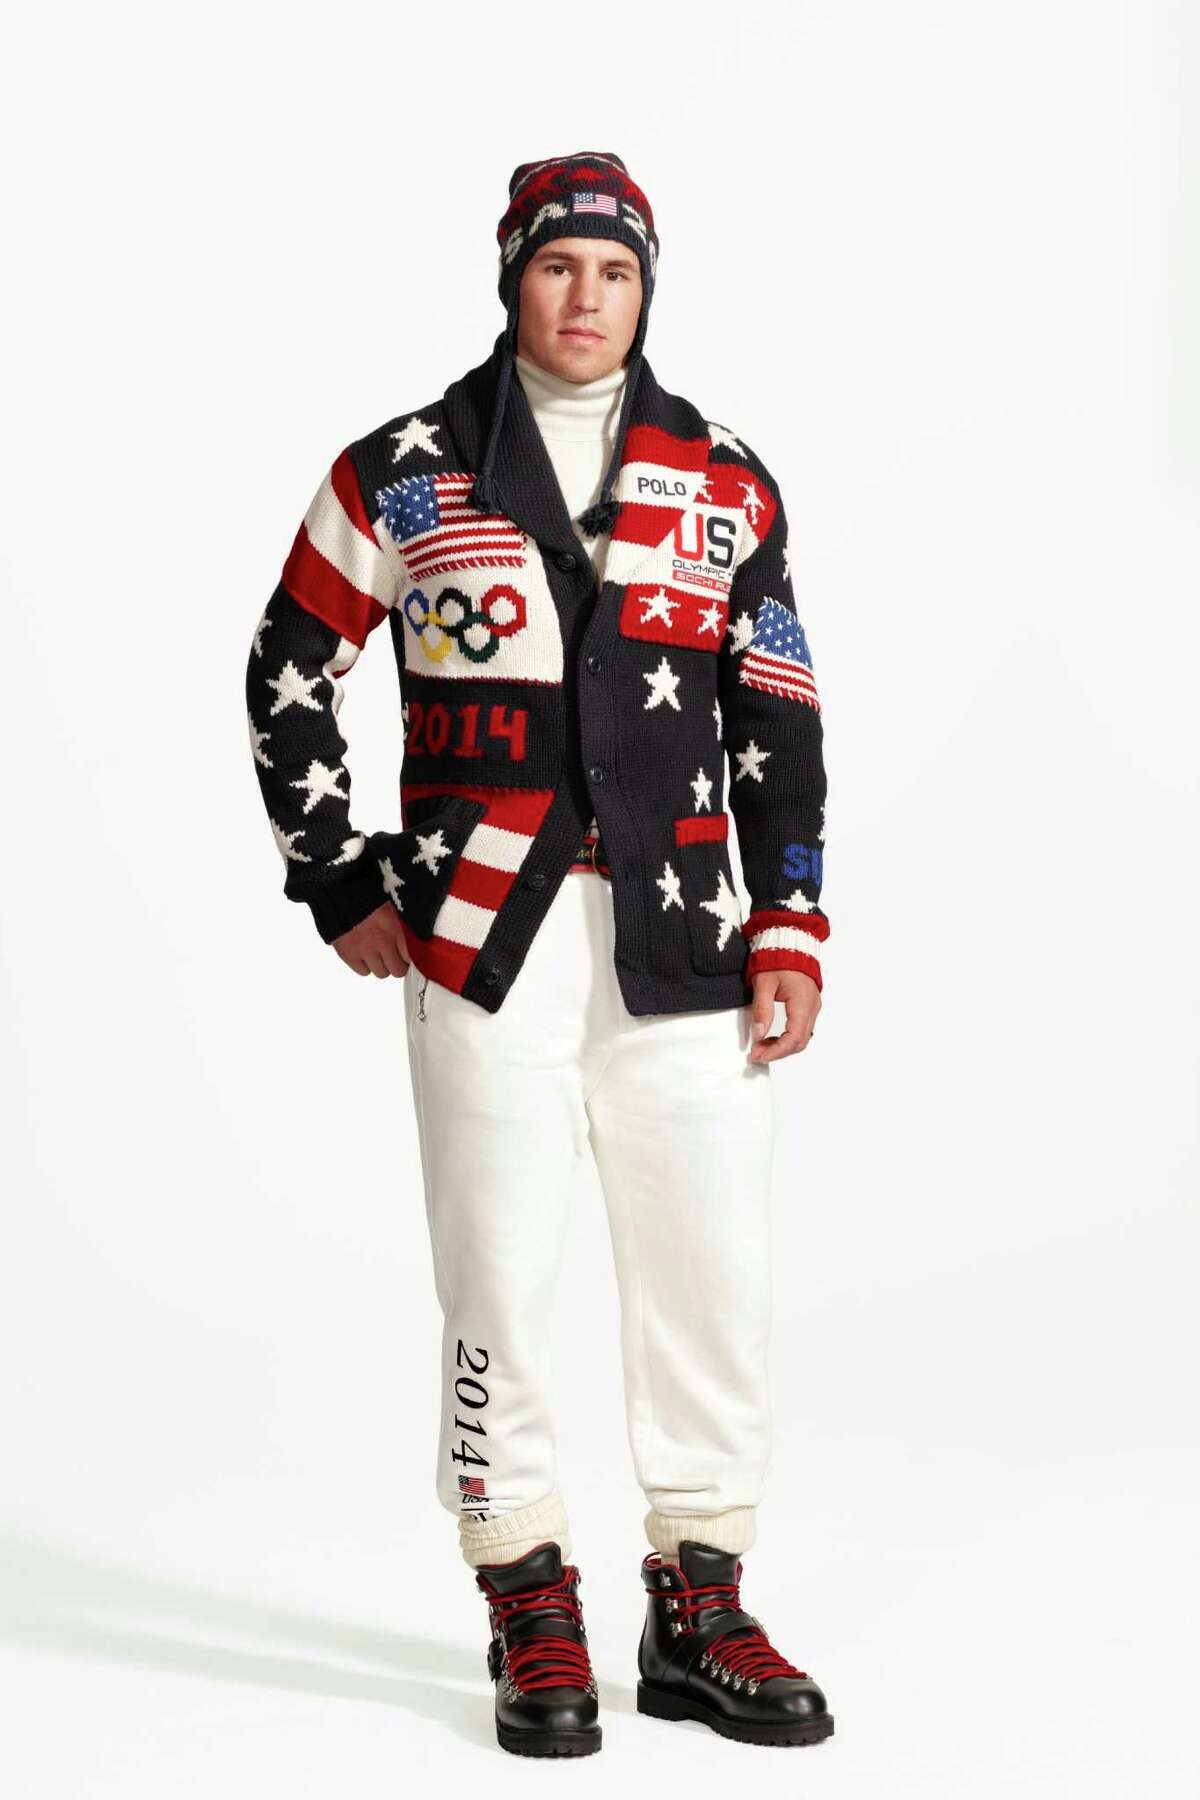 Hockey players Julie Chu, above, and Zach Parise model the official Team USA opening ceremony uniforms.